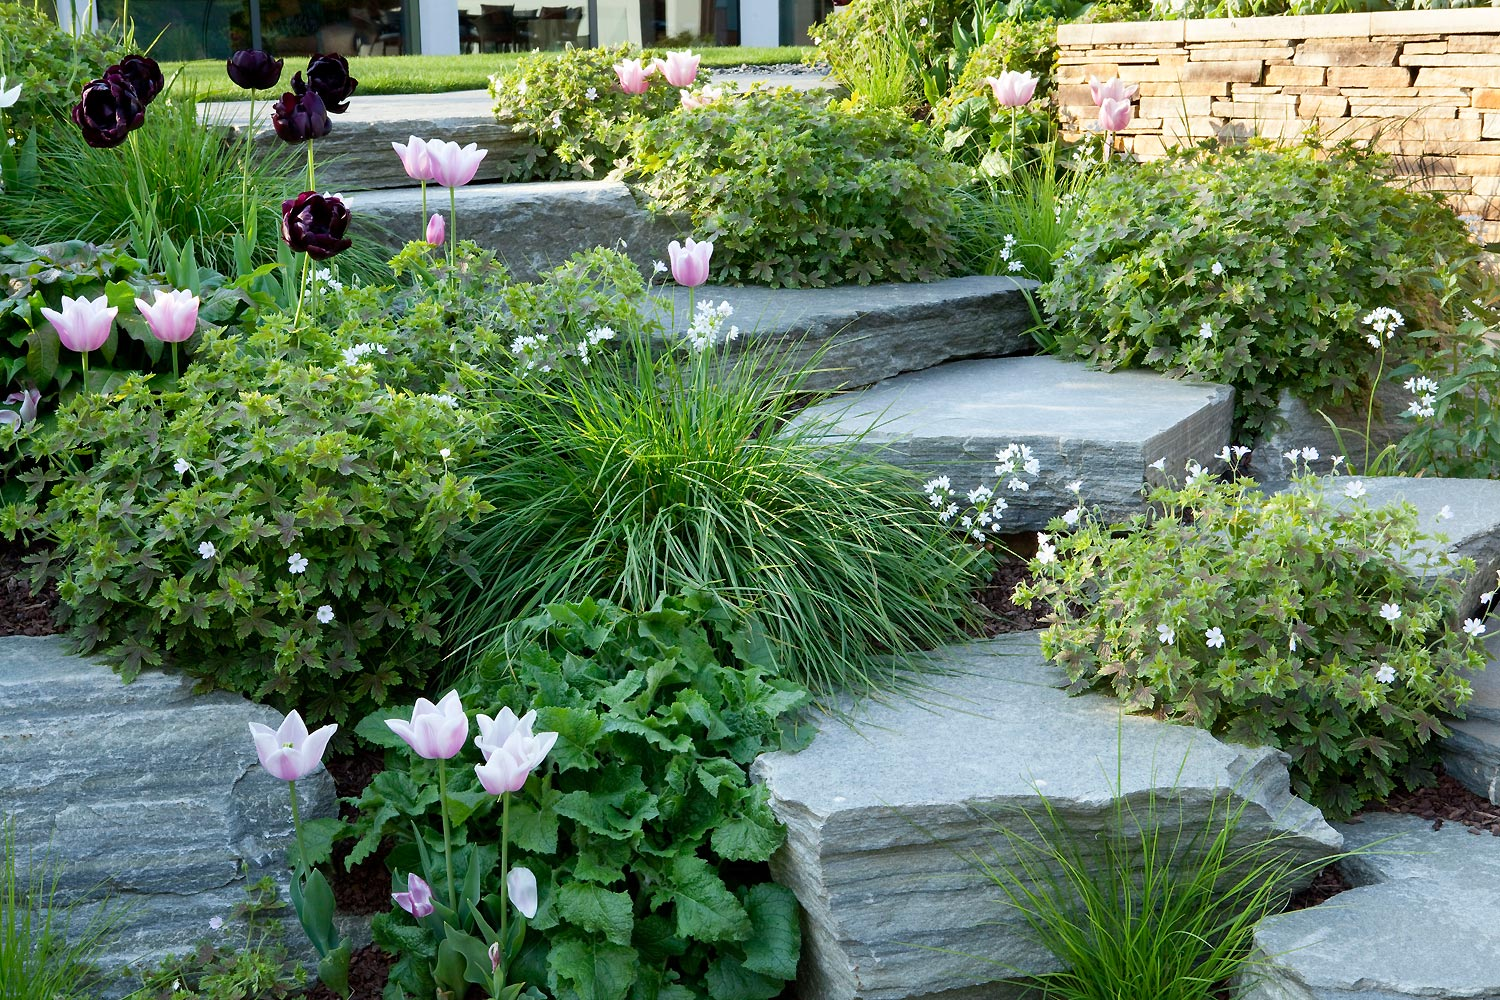 In love with beauty julie toll landscape garden design for Beautiful garden plans